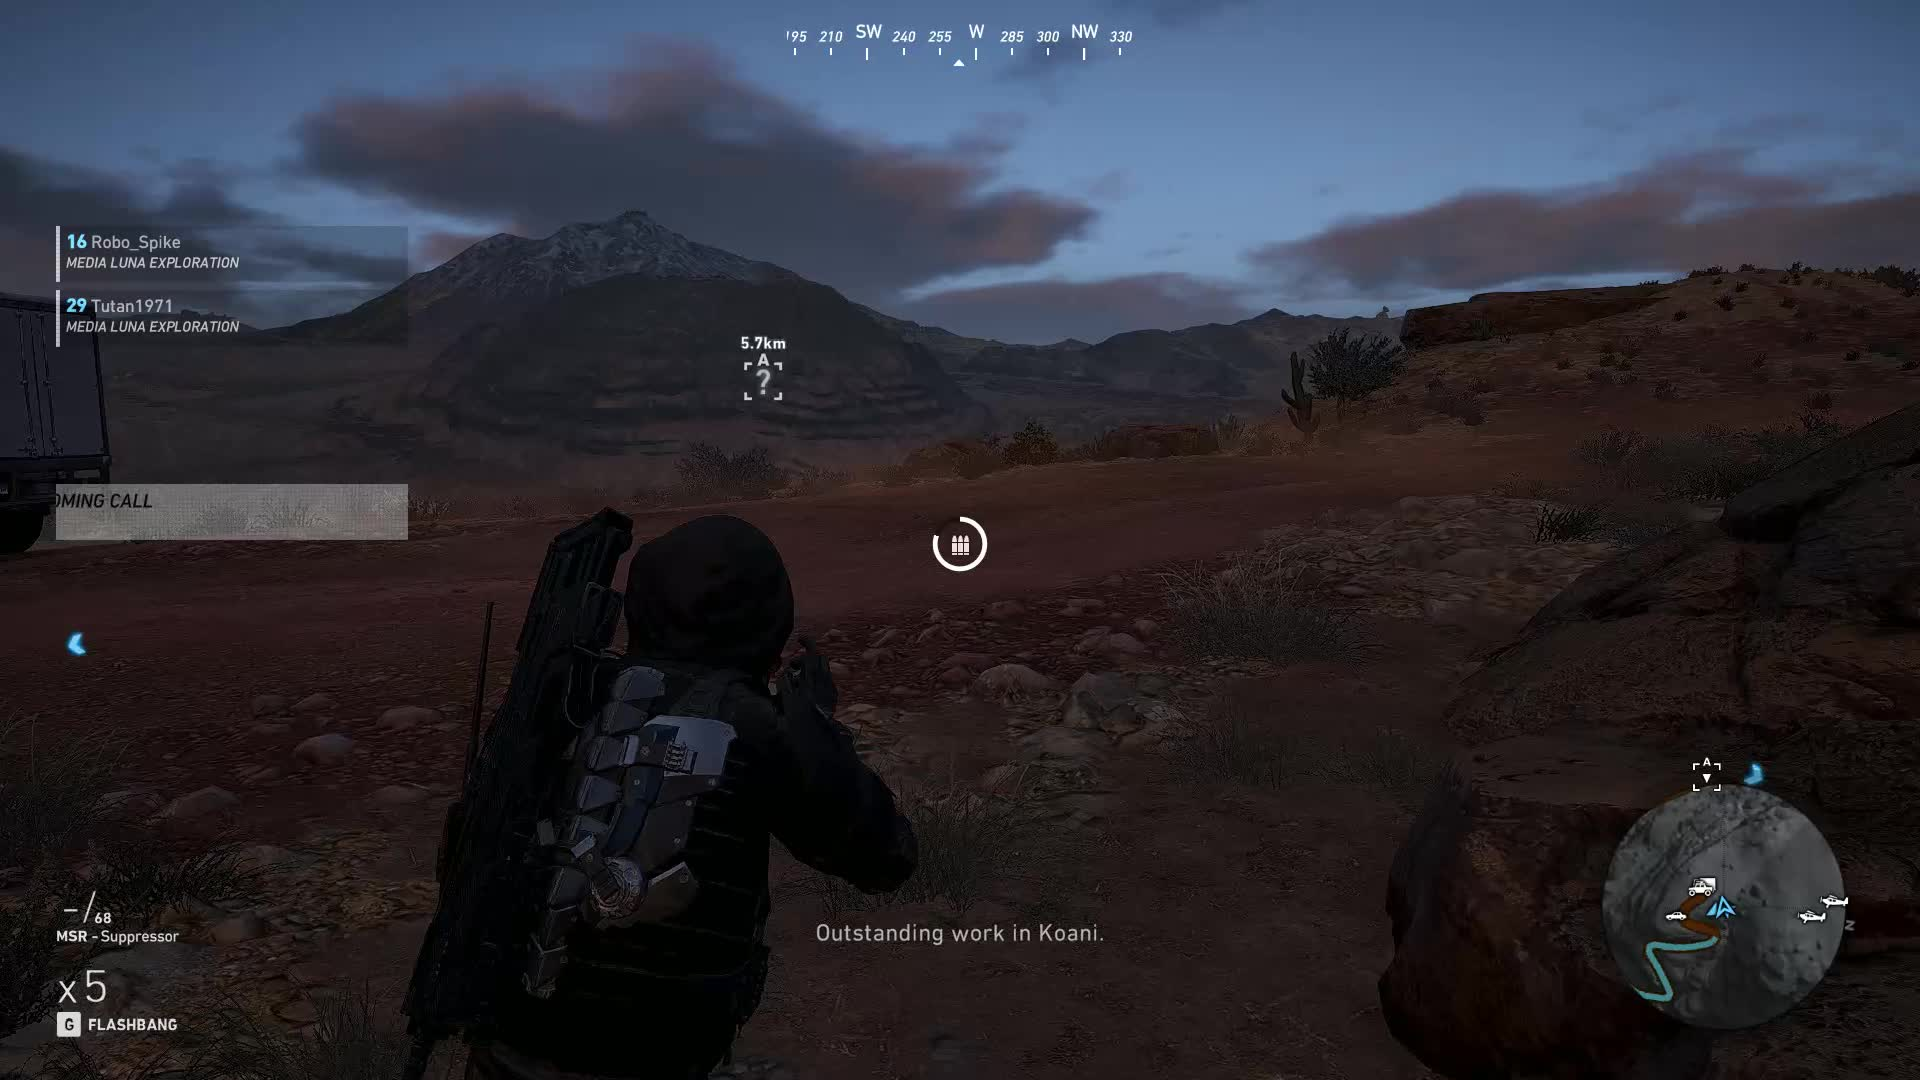 ghost recon wildlands, Vehicle Delivered GIFs